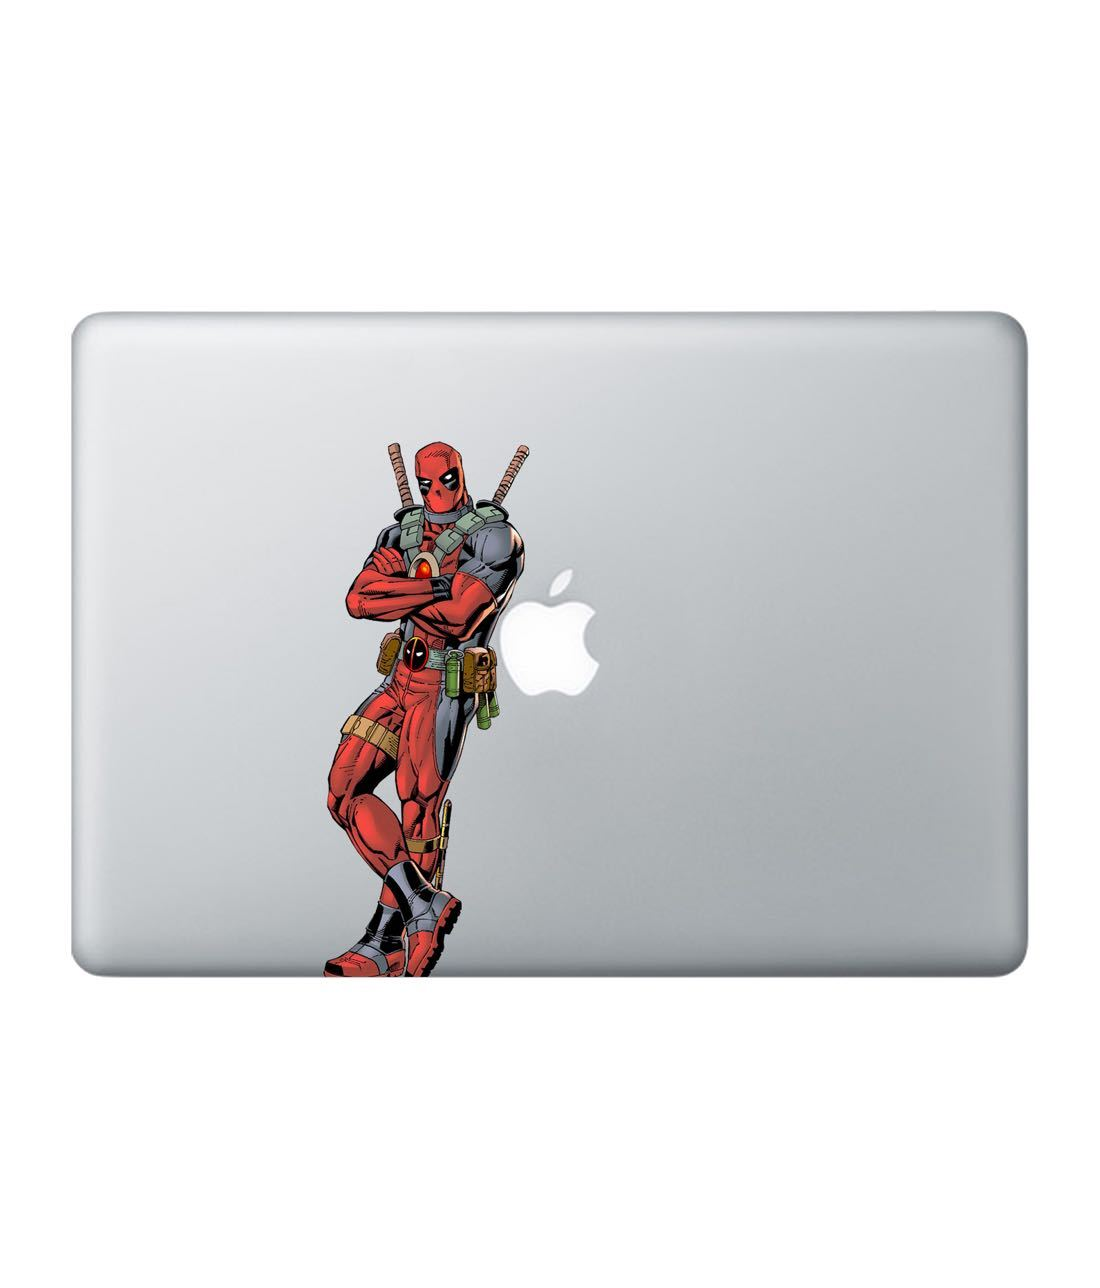 Deadpool Chill Laptop Decal by Macmerise